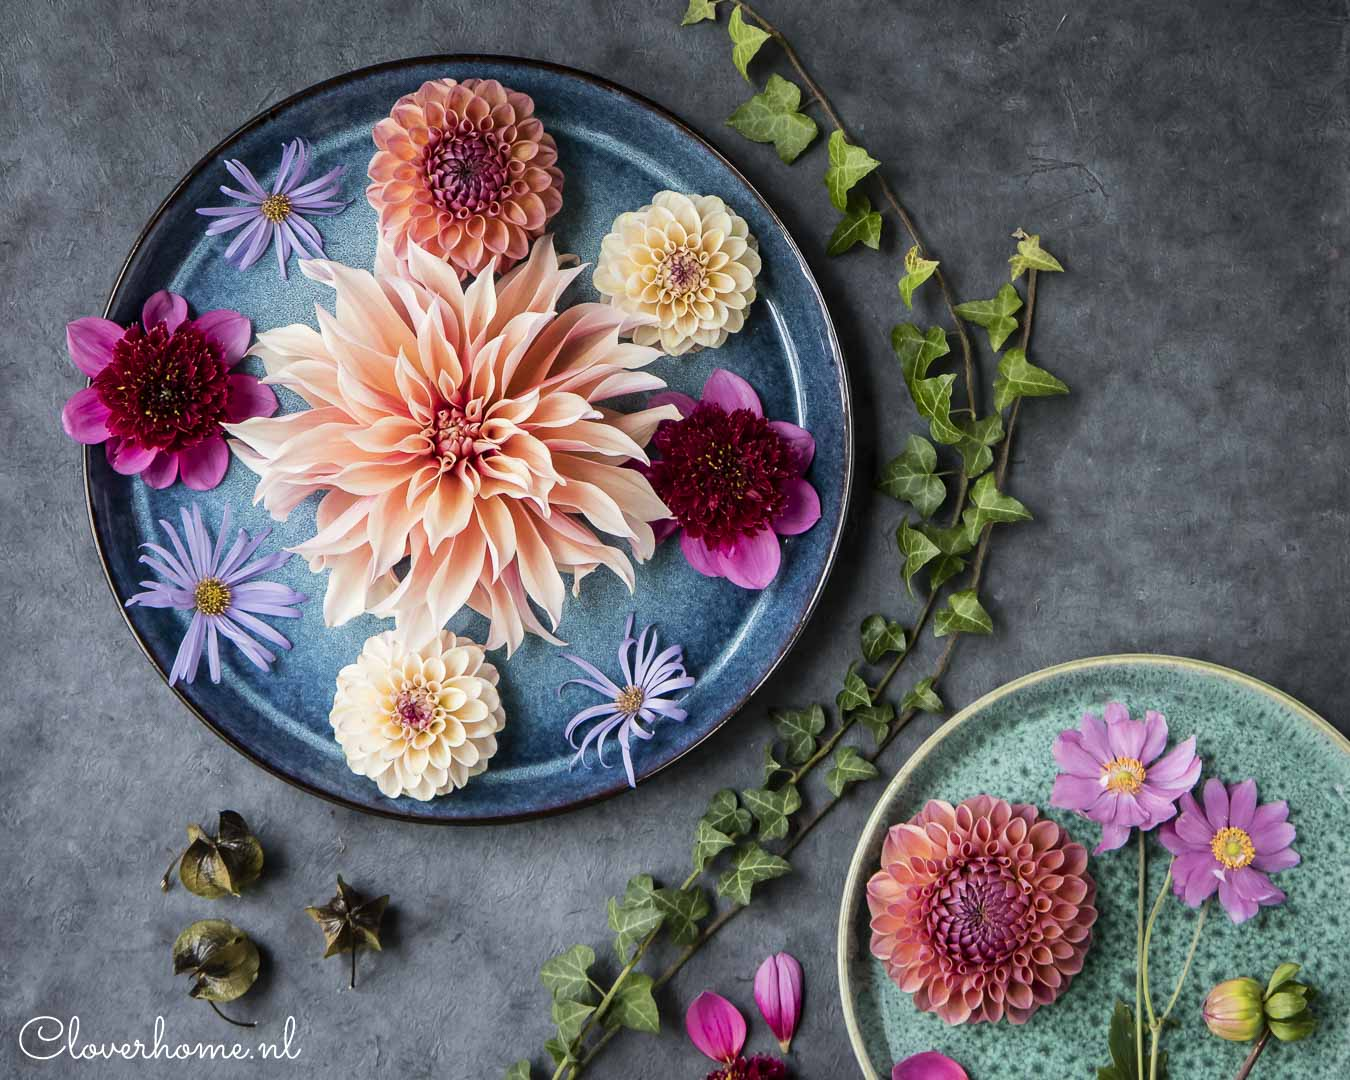 Dahlia garden review, trusted favourites: Labyrinth - Cloverhome.nl